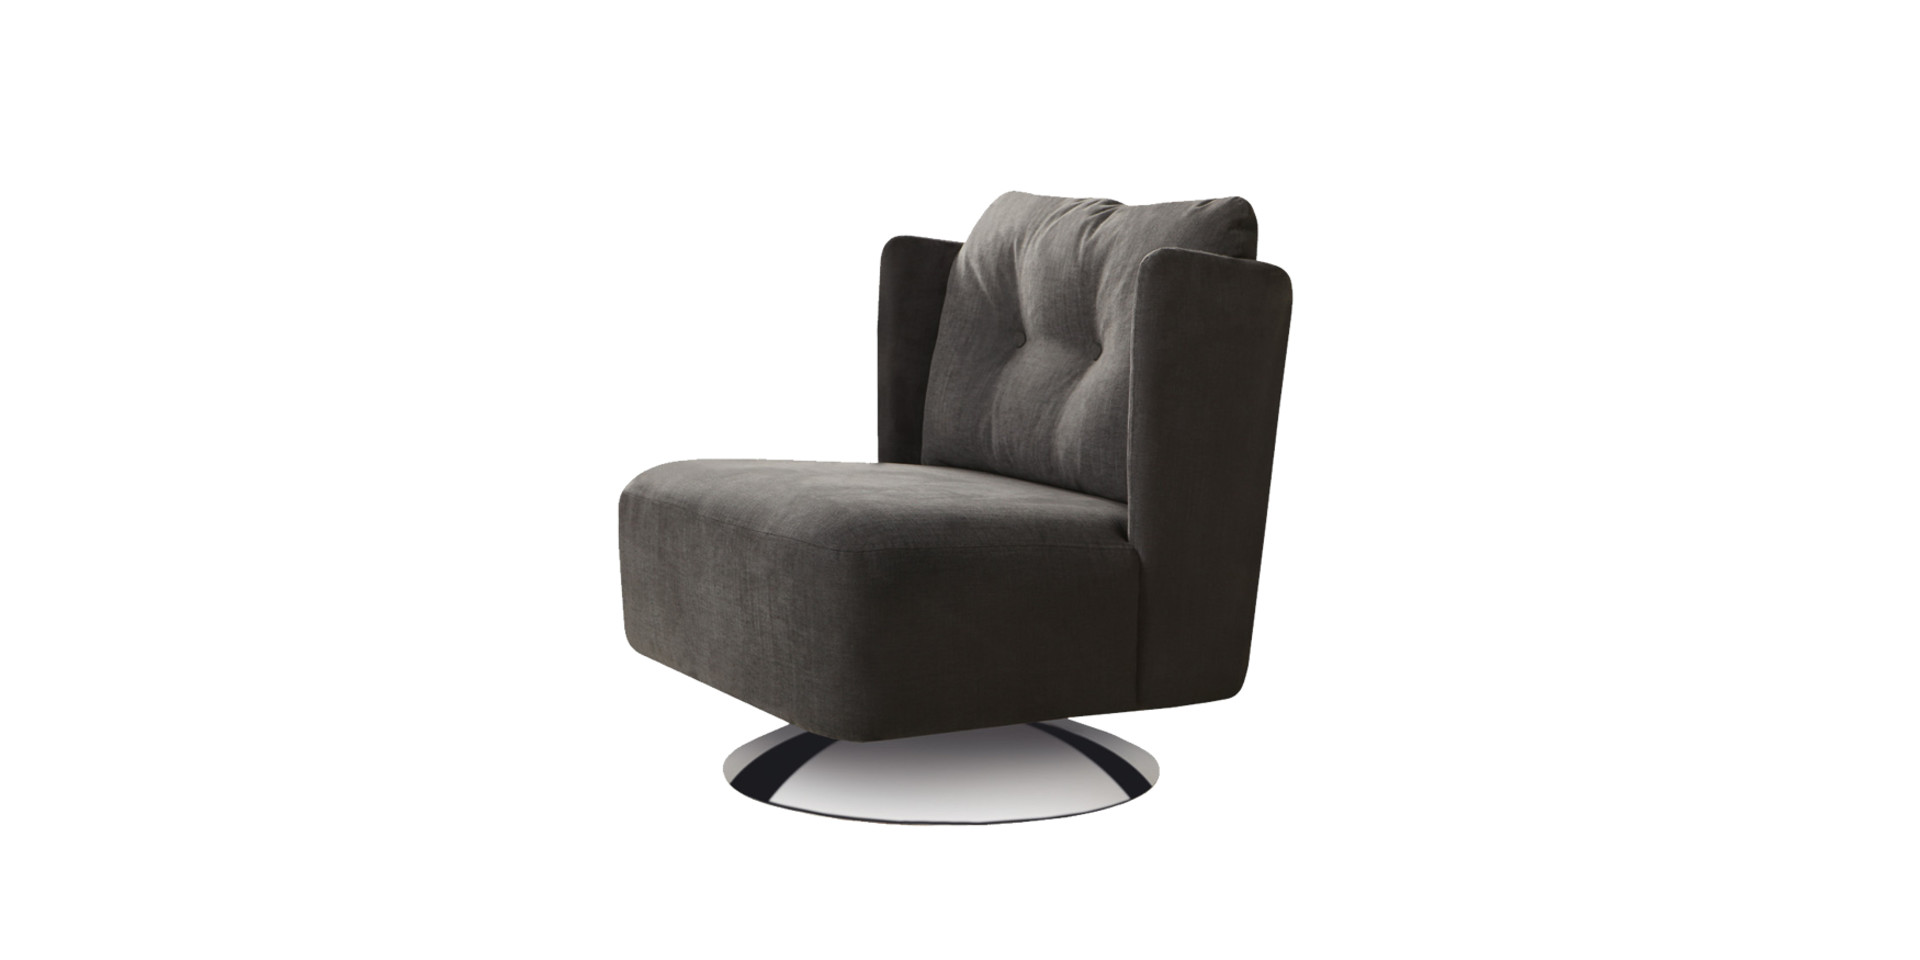 sits-alma-fauteuil-armchair_swivel_buttons_caleido2934_dark_grey_4